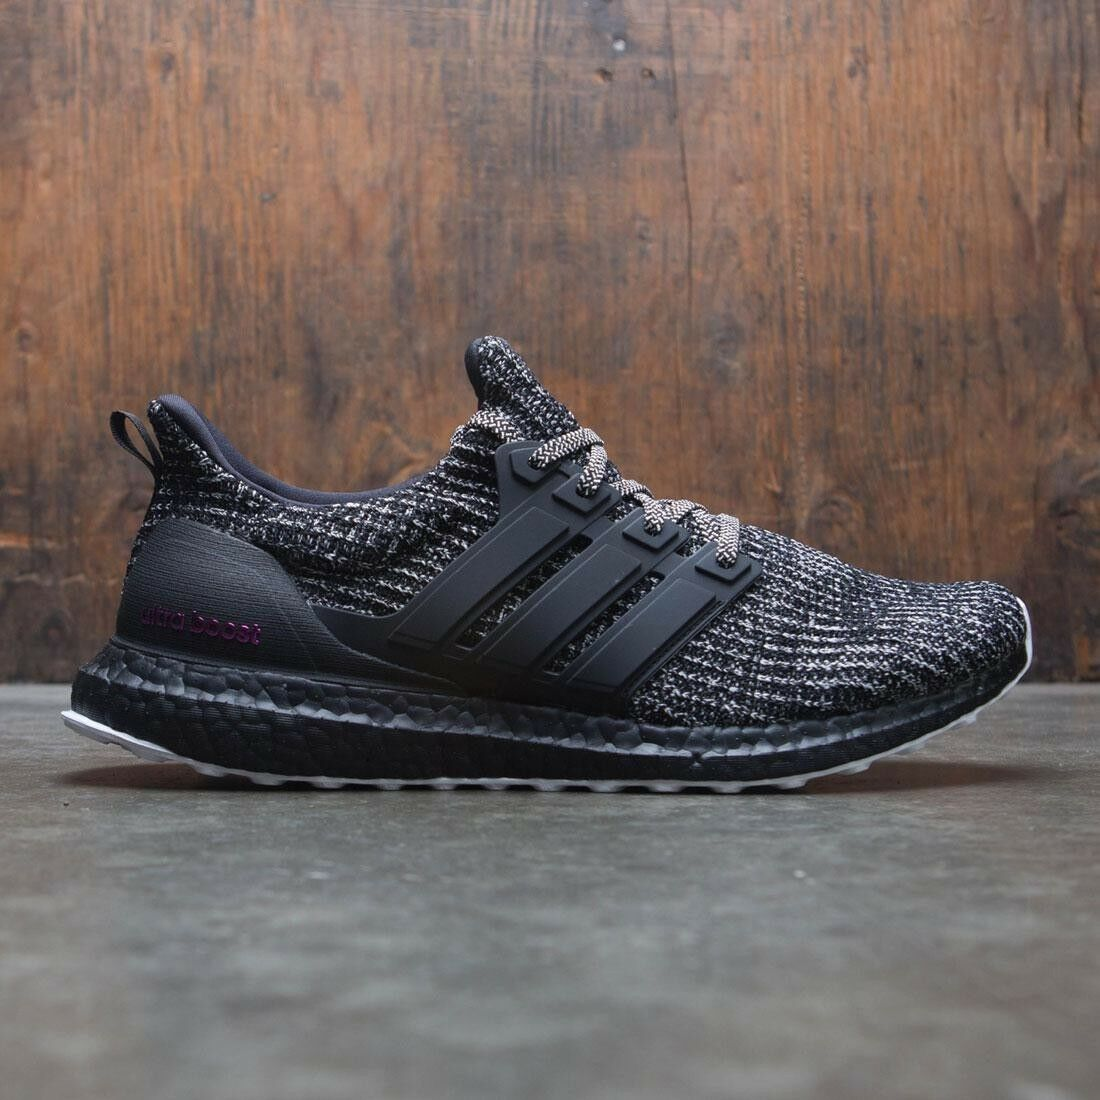 Adidas Ultra Boost 4.0 4.0 4.0 Black White Breast Cancer Awareness Size 12. BC0247 yeezy 60a36a